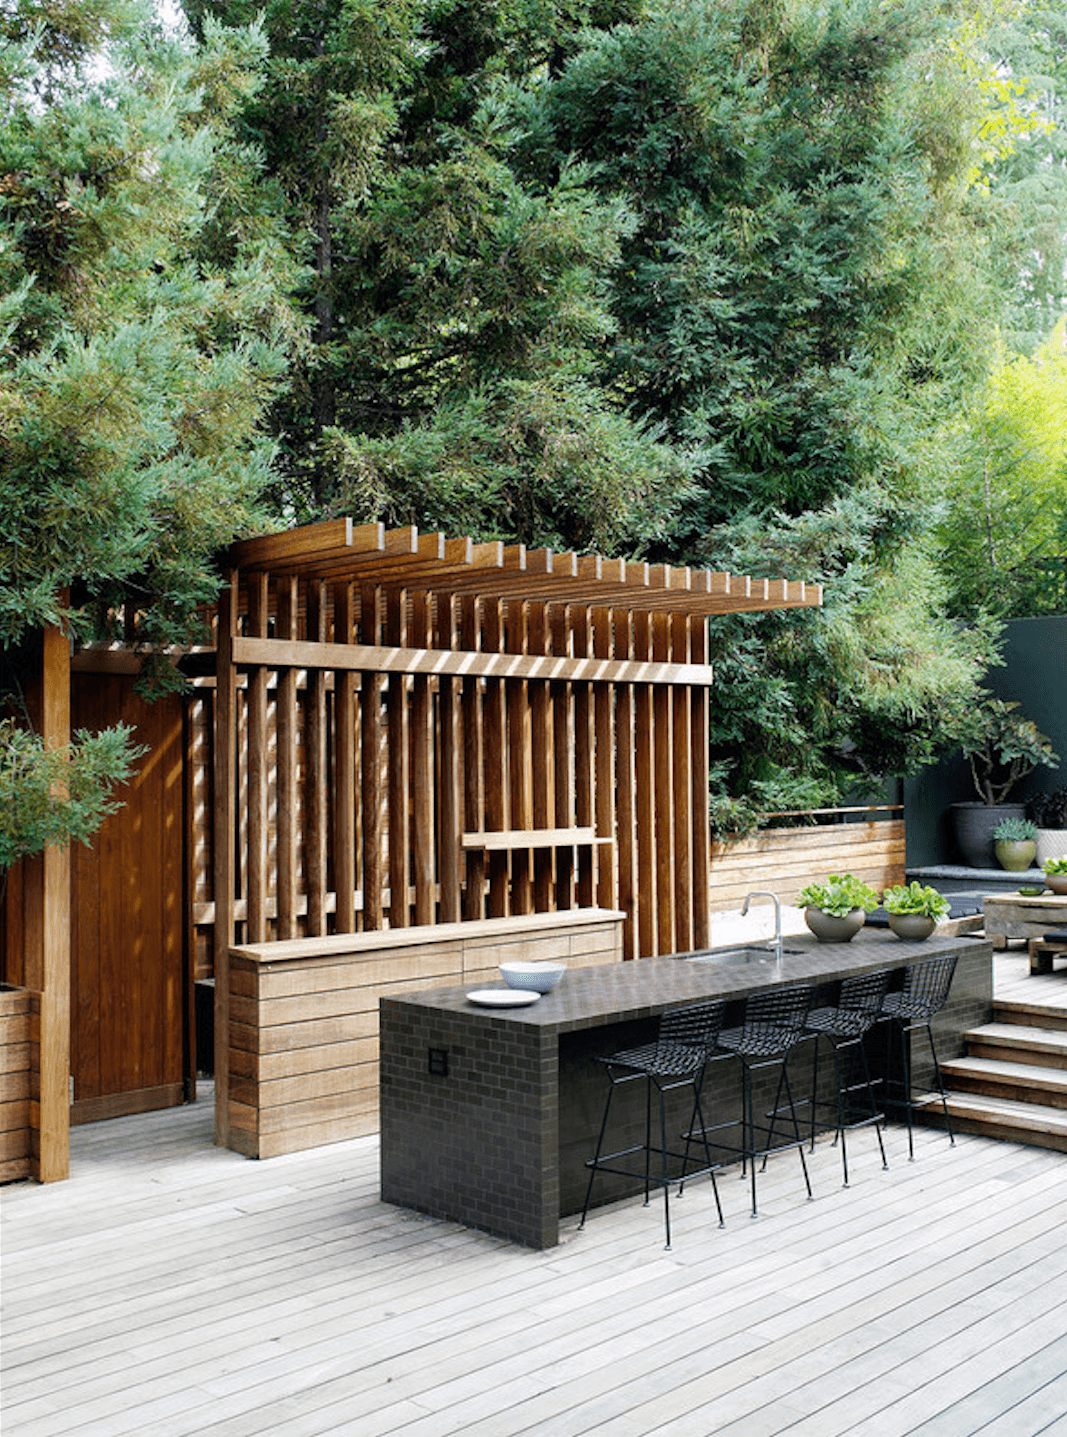 LA design collective Commune created this pergola-like outdoor kitchen in a remodel of a Buff & Hensman house in Los Angeles&#8